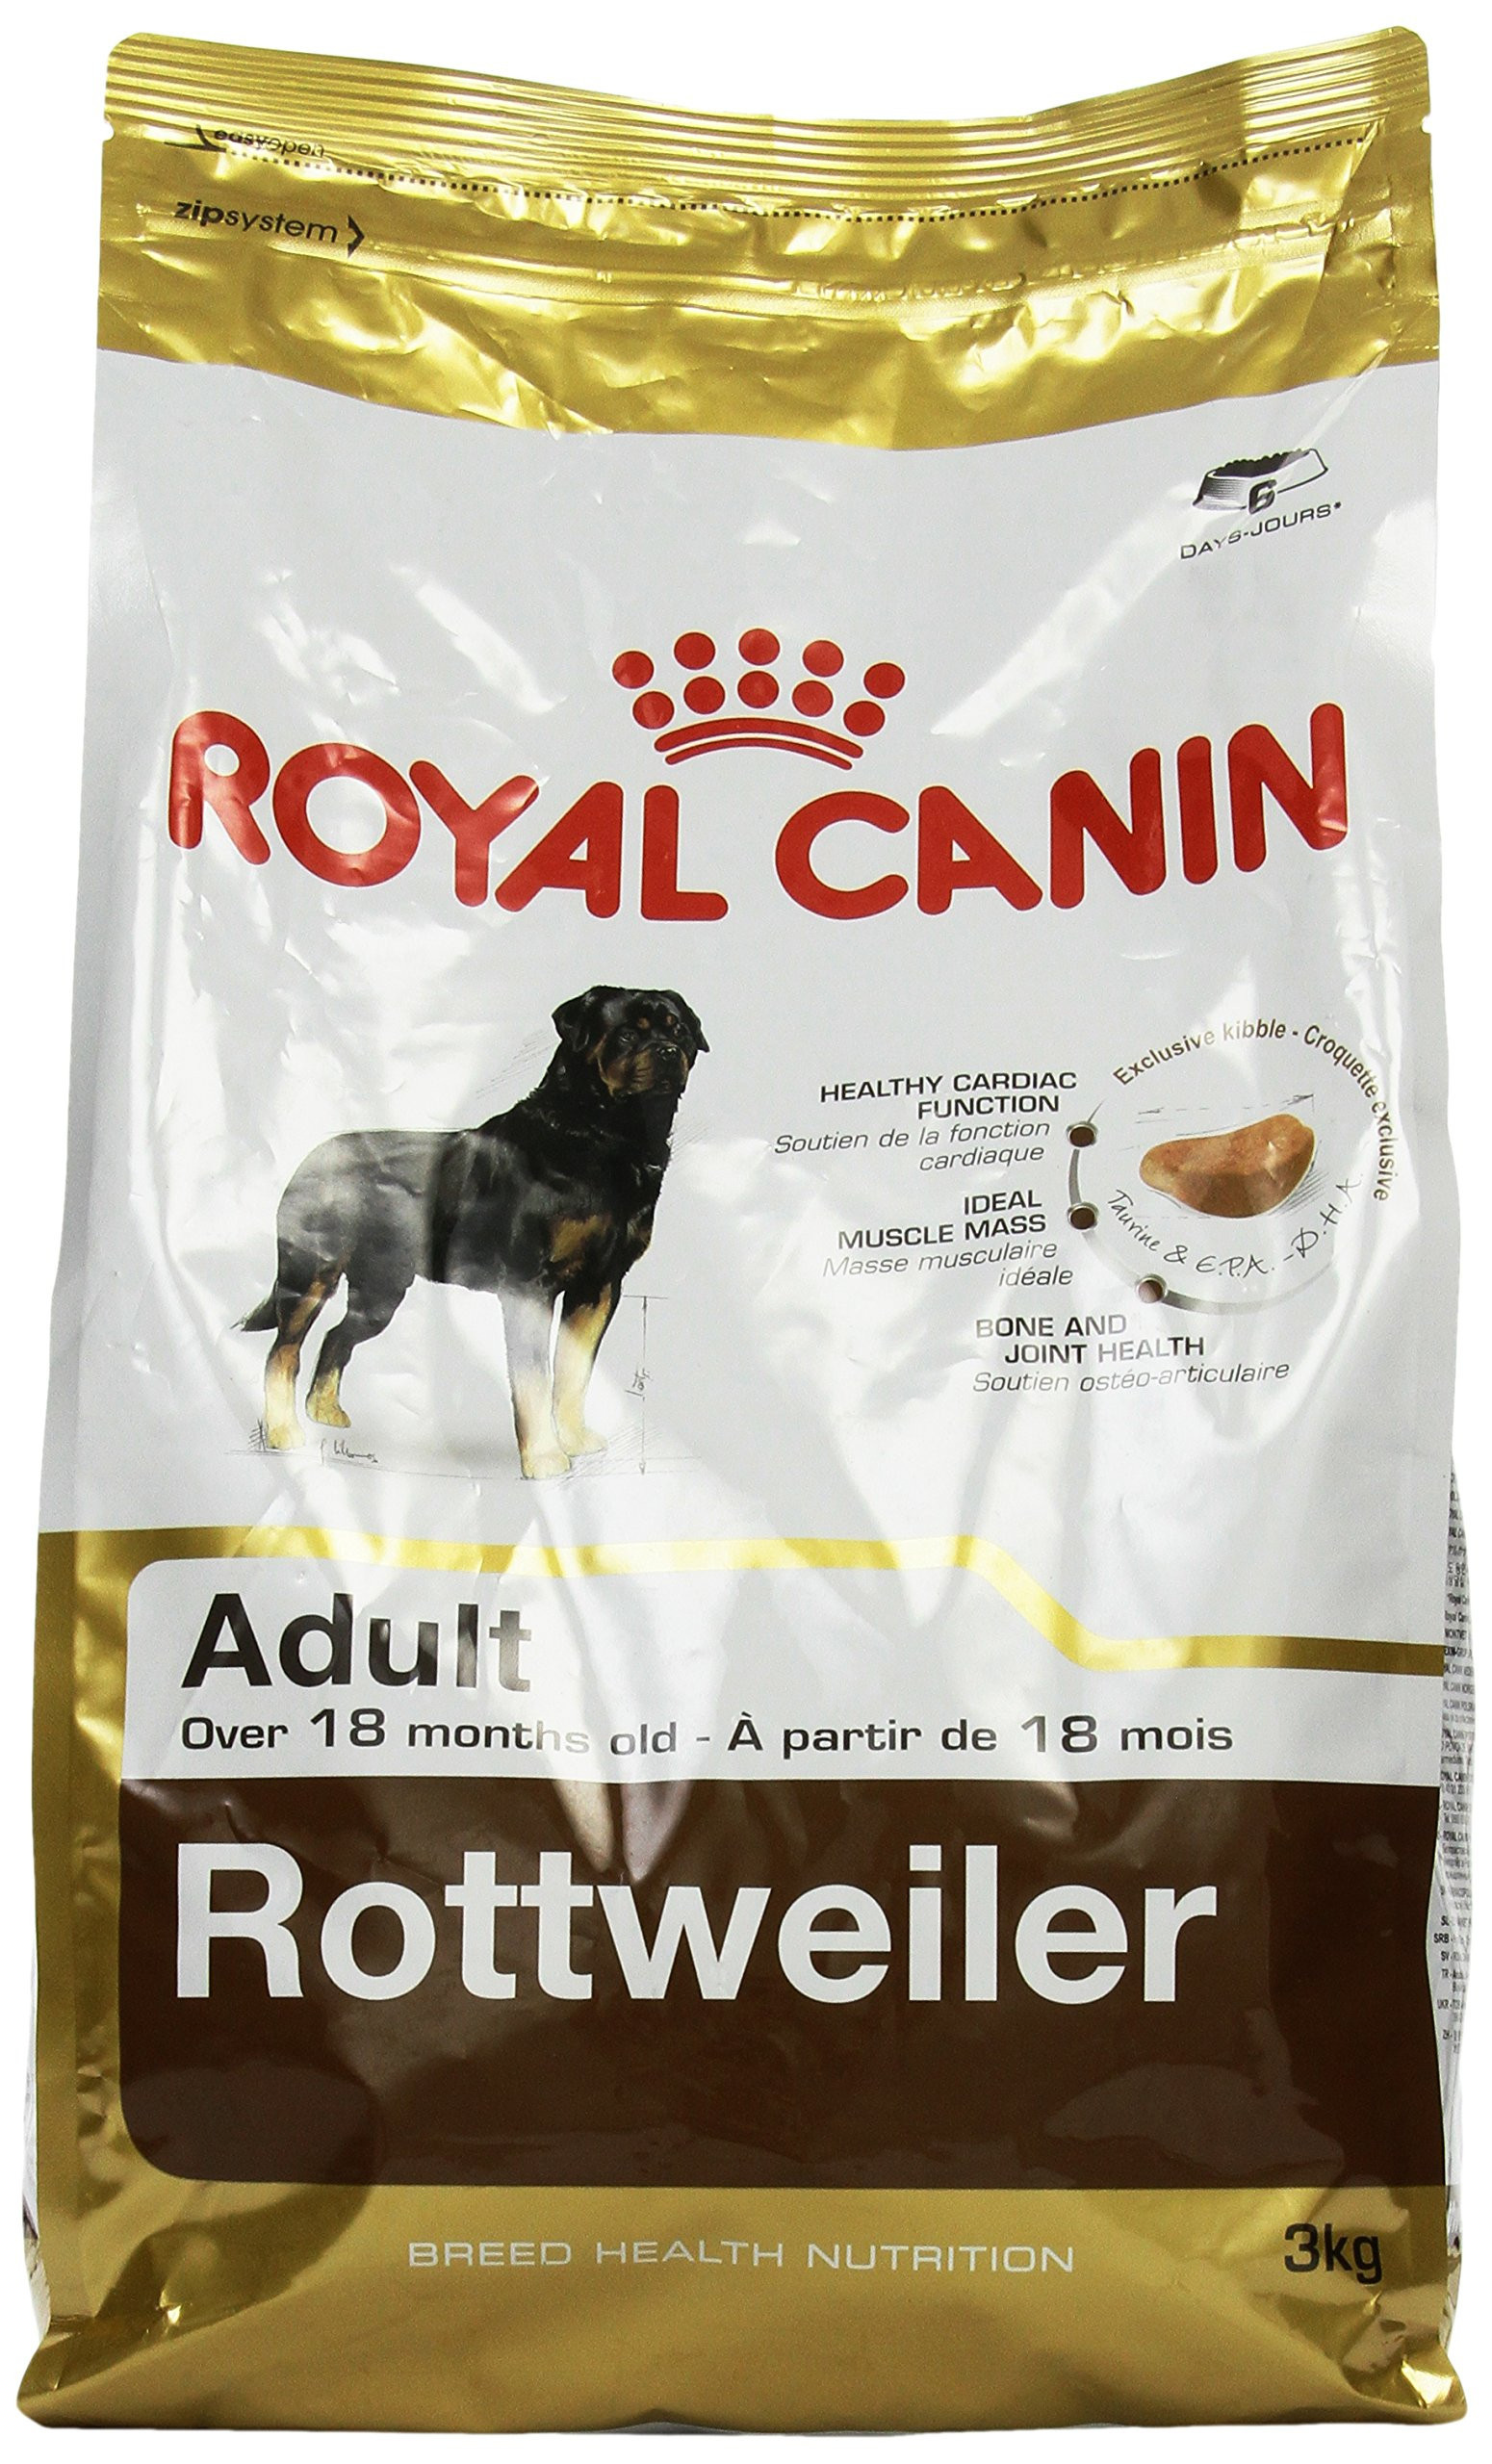 Royal Canin Dog Food Rottweiler 26 Dry Mix 3kg